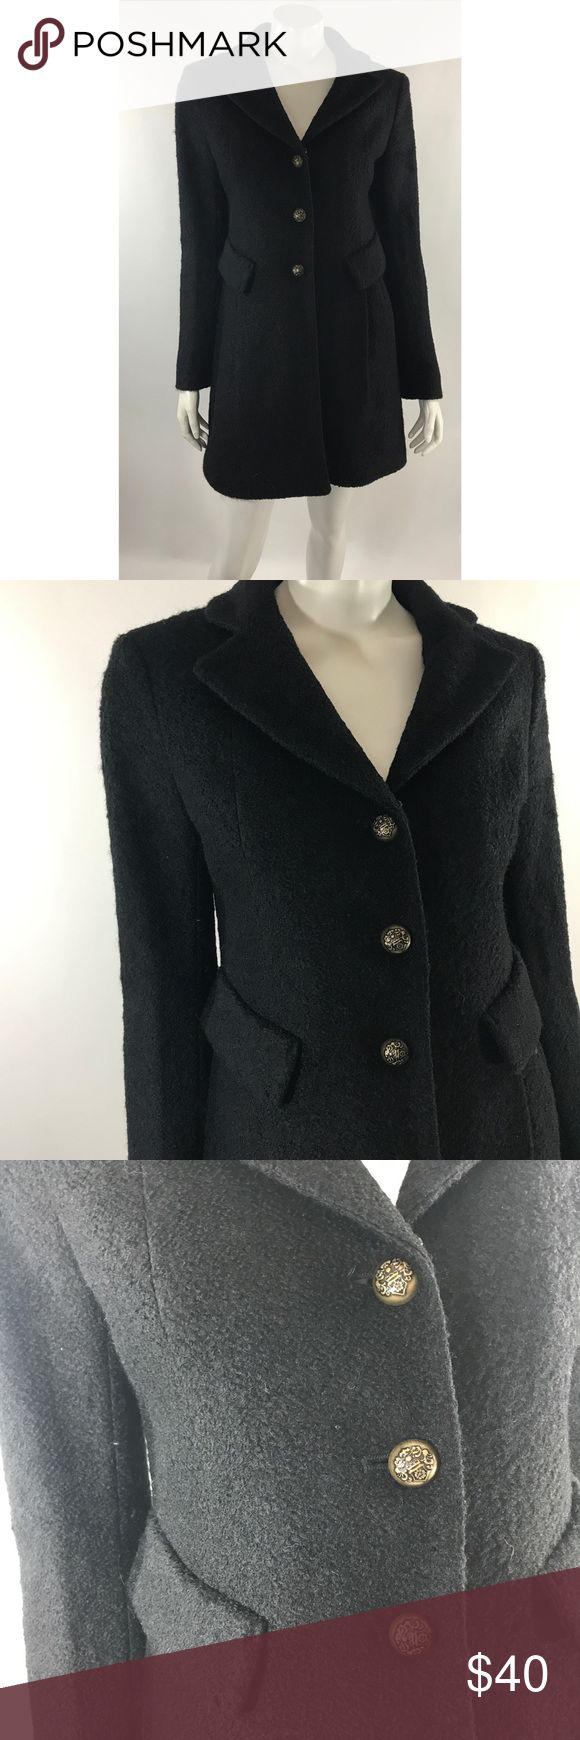 Laundry Shelli Segal Dress Coat Size 4 Solid Black Laundry Shelli Segal Womens Dress Coat Size 4 Solid Black Wool Button. Measurements: (in inches) Underarm to underarm: 18 Length: 34 Sleeve: 25 Good, gently used condition Laundry By Shelli Segal Jackets & Coats